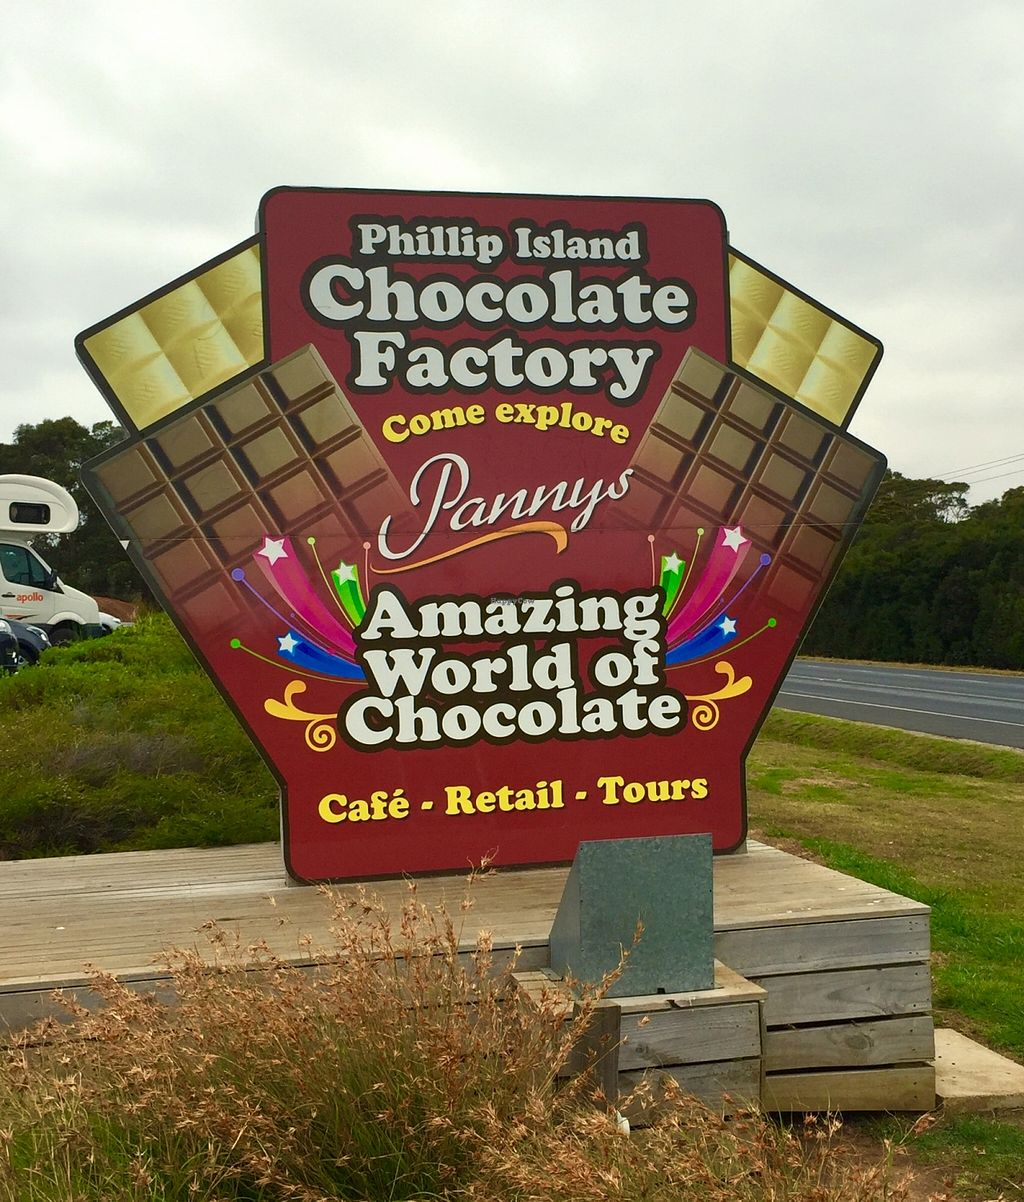 """Photo of Phillip Island Chocolate Factory  by <a href=""""/members/profile/karlaess"""">karlaess</a> <br/>Street sign <br/> January 11, 2016  - <a href='/contact/abuse/image/68231/132073'>Report</a>"""